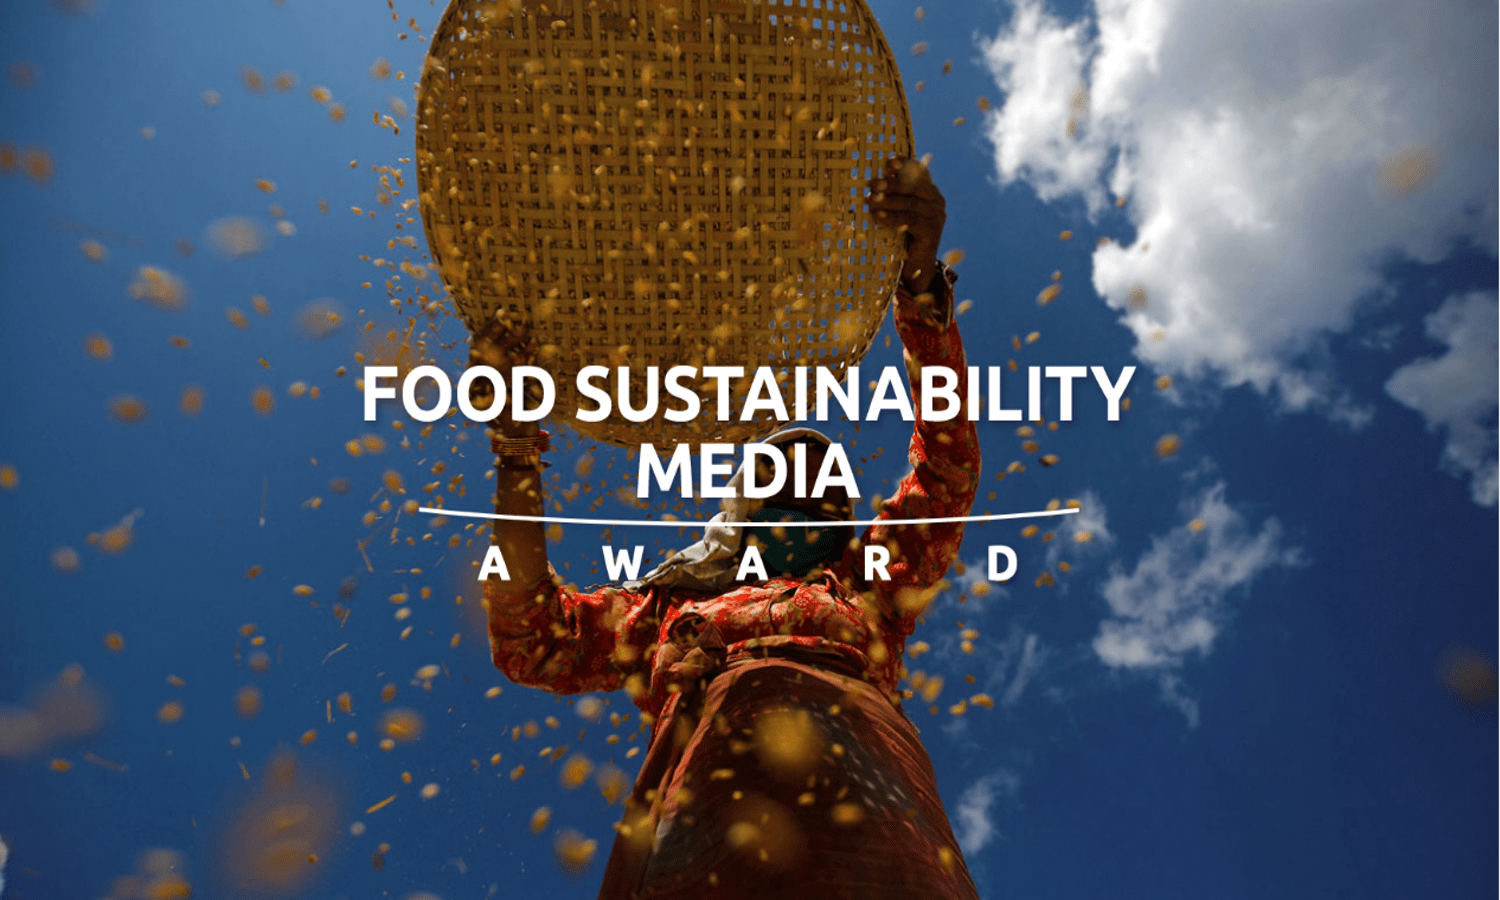 The Barilla Center for Food and Nutrition and the Thomson Reuters Foundation have announced the winners of the 2017 Food Sustainability Media Awards.